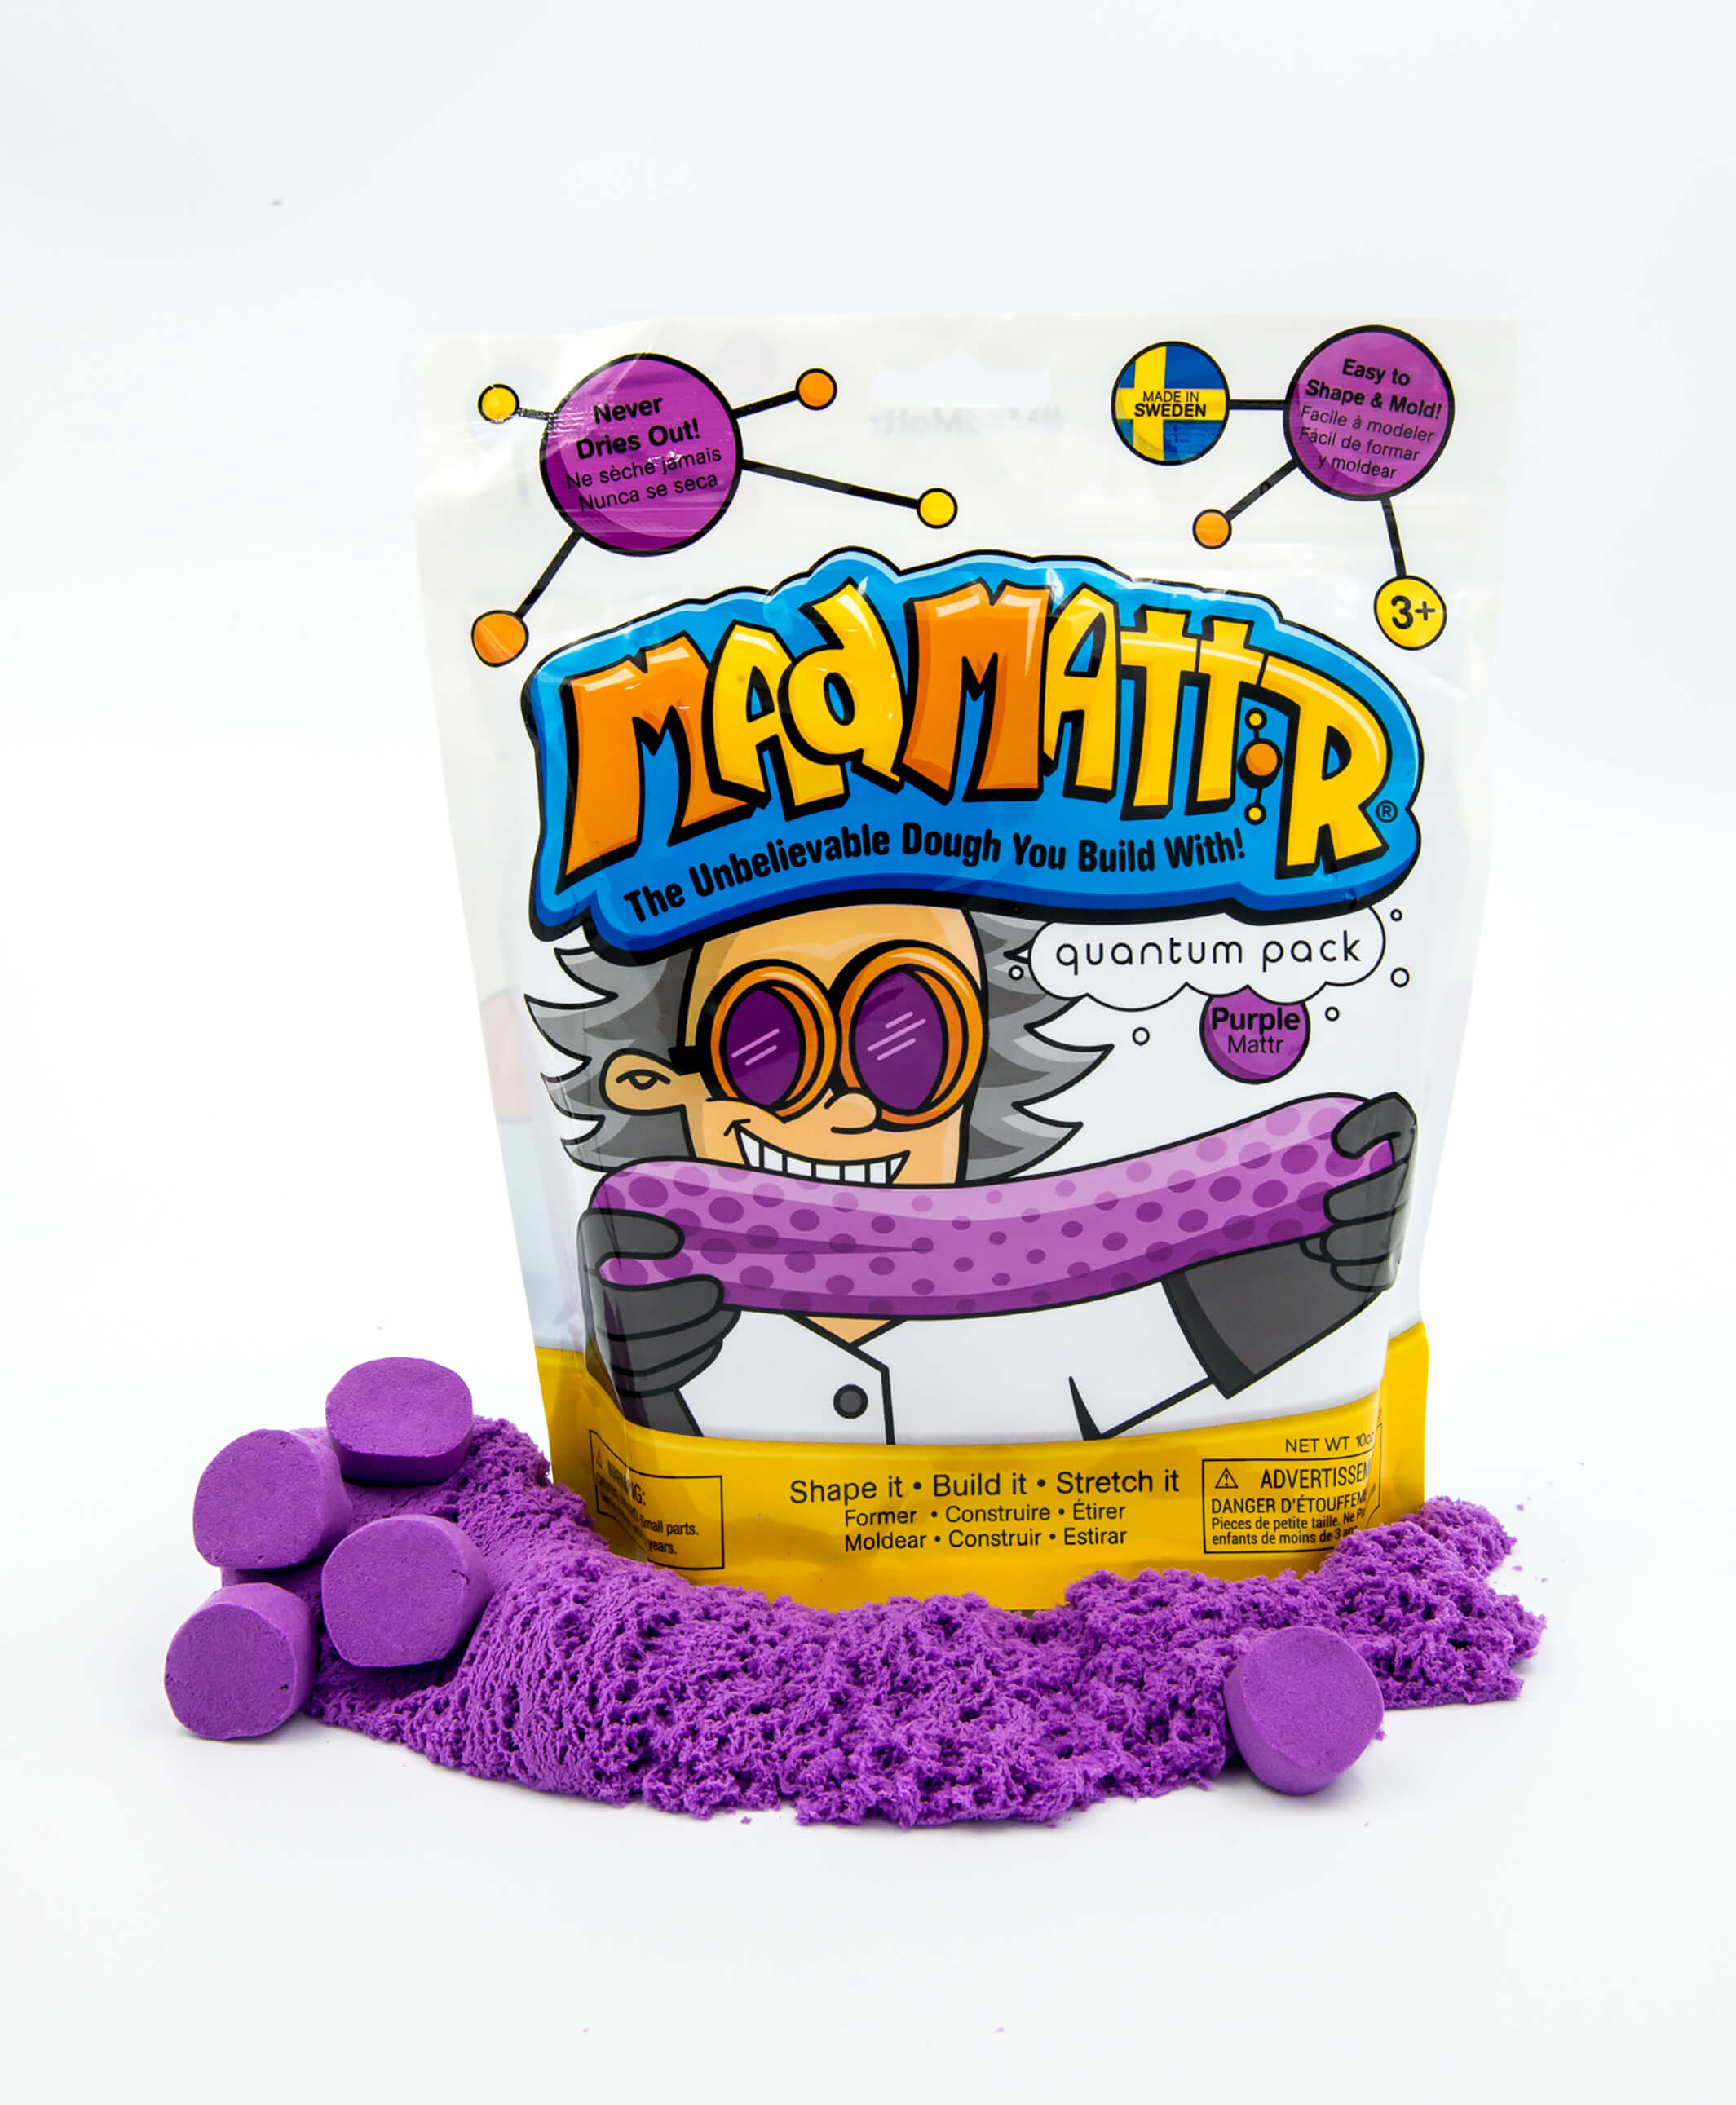 IMAGE 7 - Mad Mattr Quantum Pack - Purple with MM.jpg